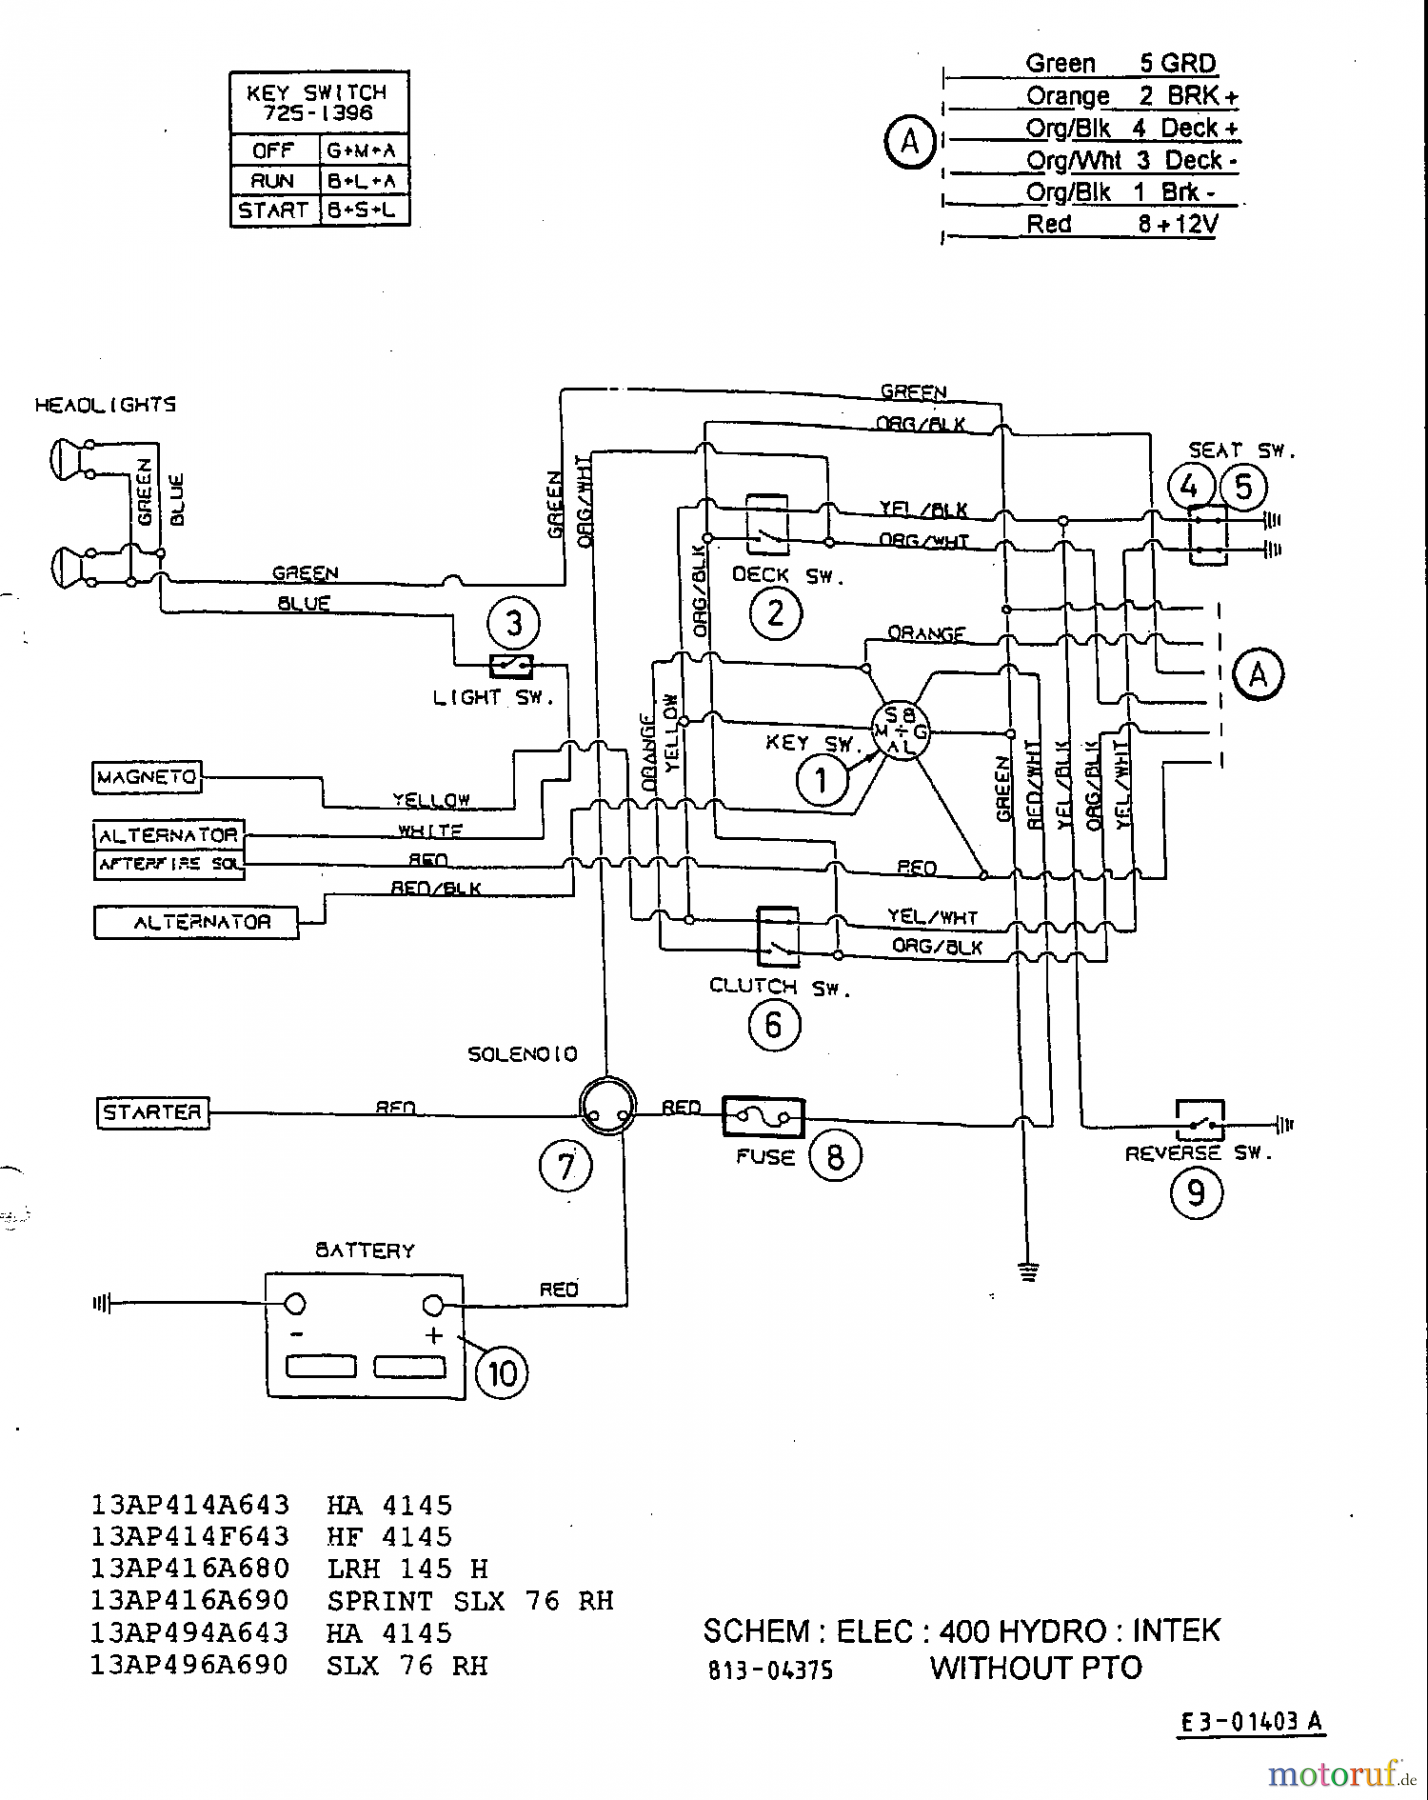 hight resolution of mtd wire diagram book diagram schema mtd wiring diagram book diagram schema mtd wiring diagram riding